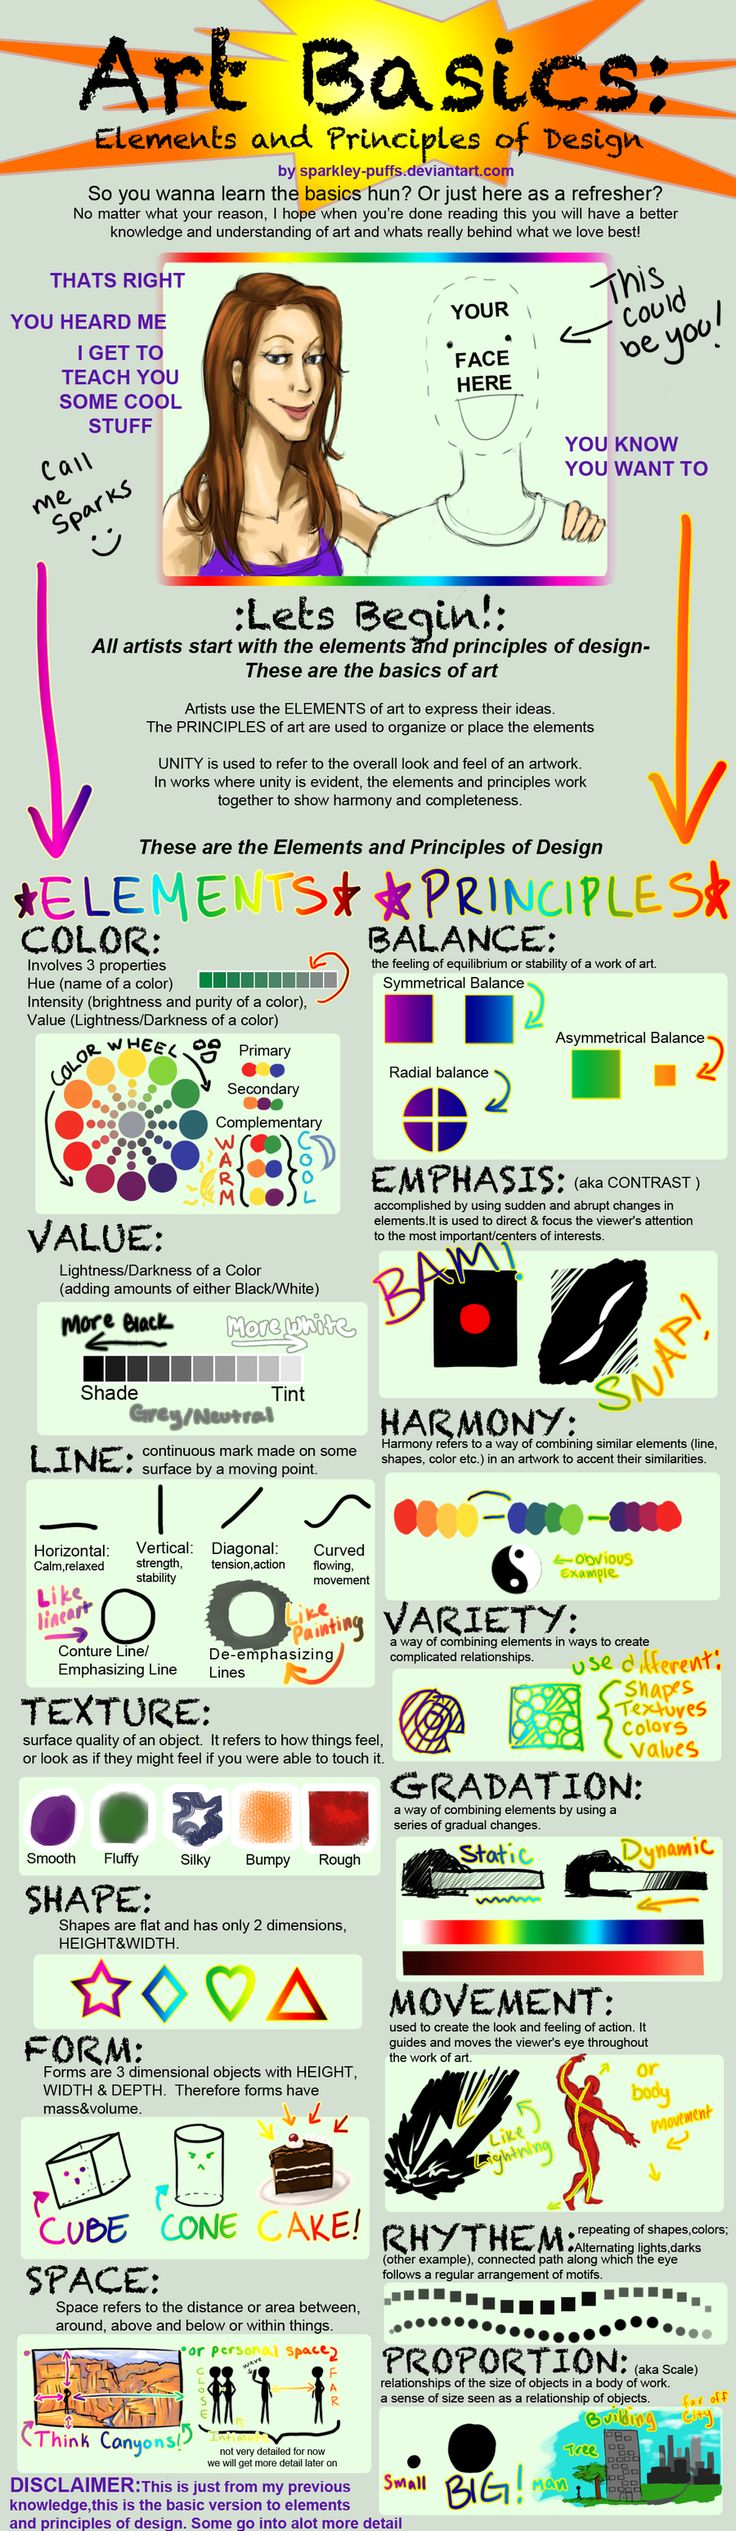 7 Elements And Principles Of Art : Elements principles of design by thecuddlykoalawhale